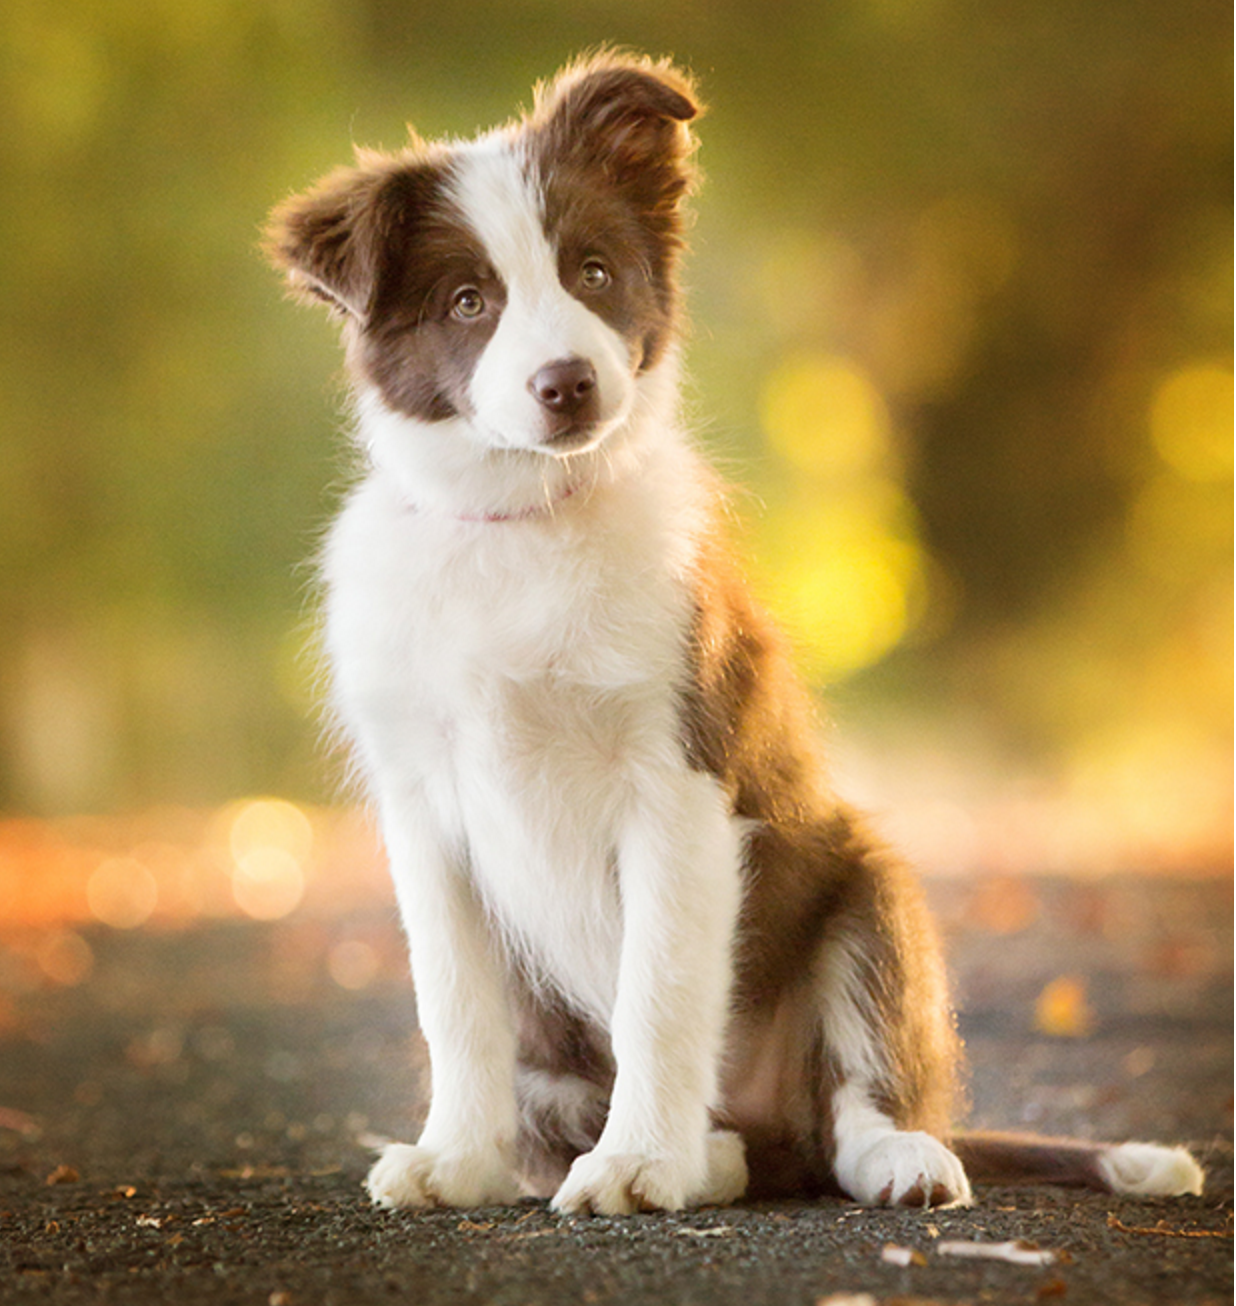 Pin By Aubrey Thomson On Aesthetically Pleasing Animals Border Collie Puppies Border Collie Dog Puppy Photography